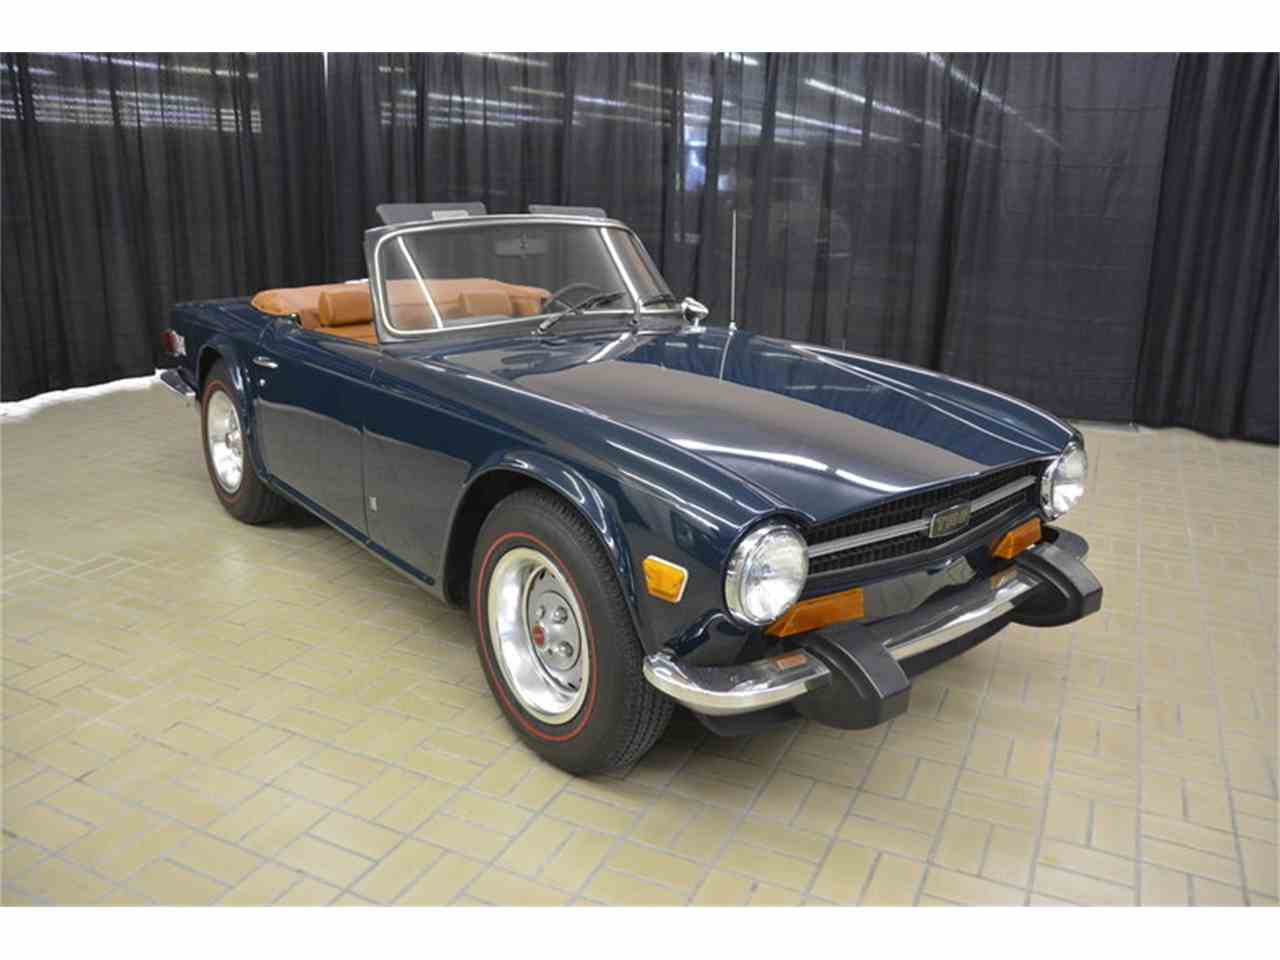 Classic Triumph TR6 for Sale on ClassicCars.com - Pg 3 - Sort ...